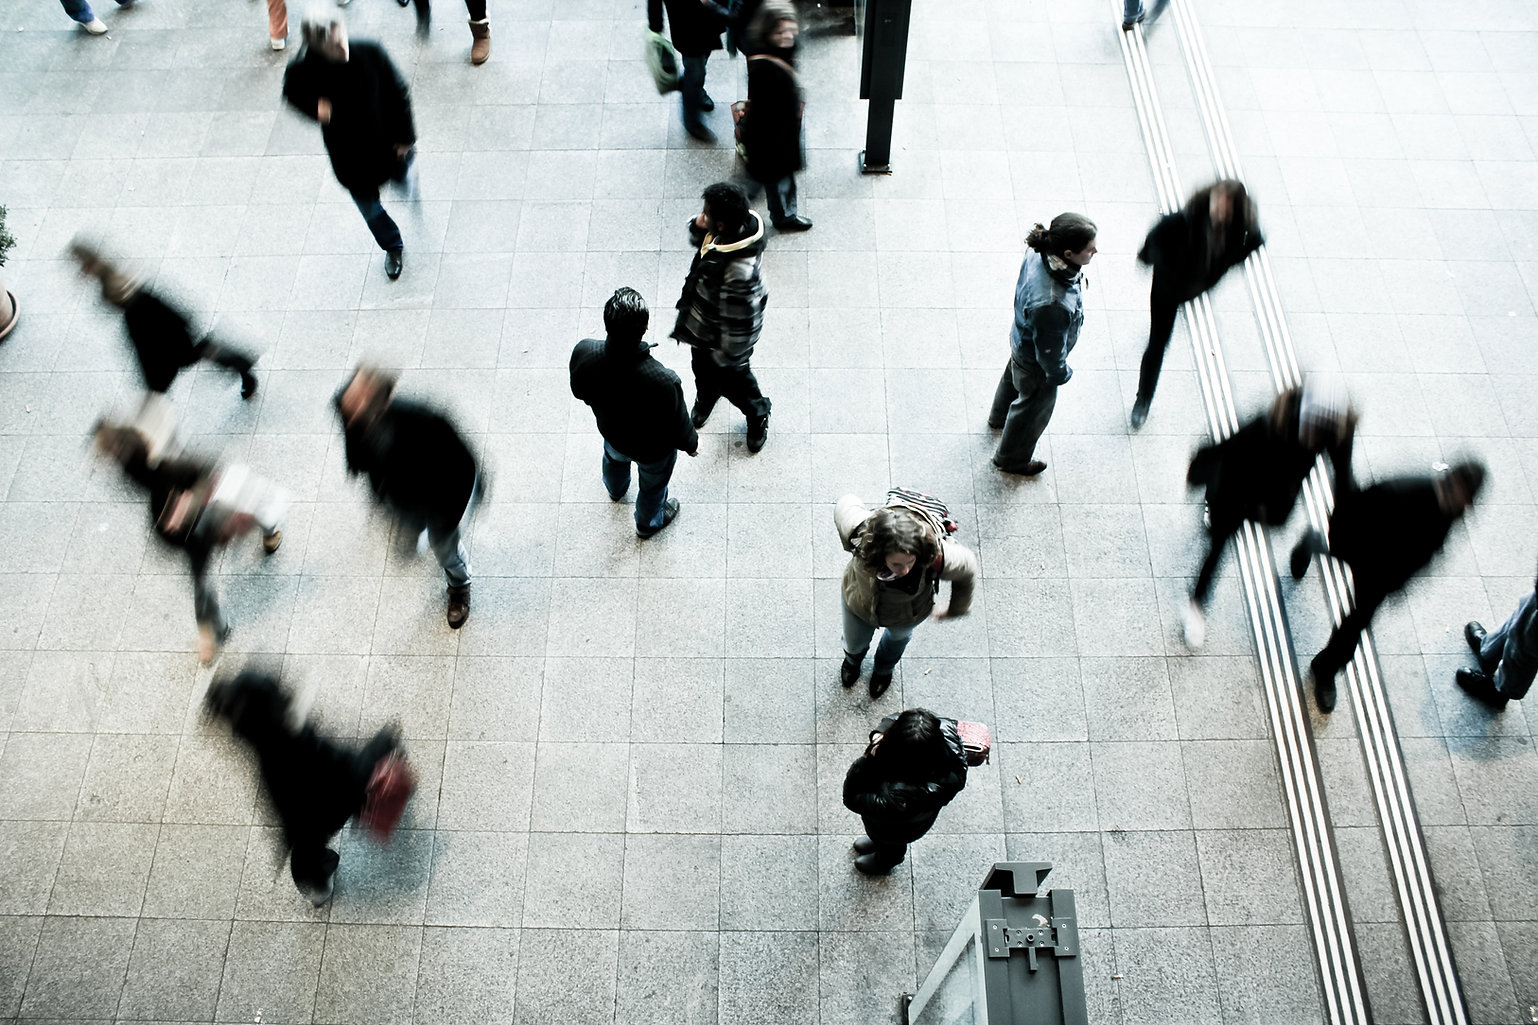 Burred image of people walking on a pavement